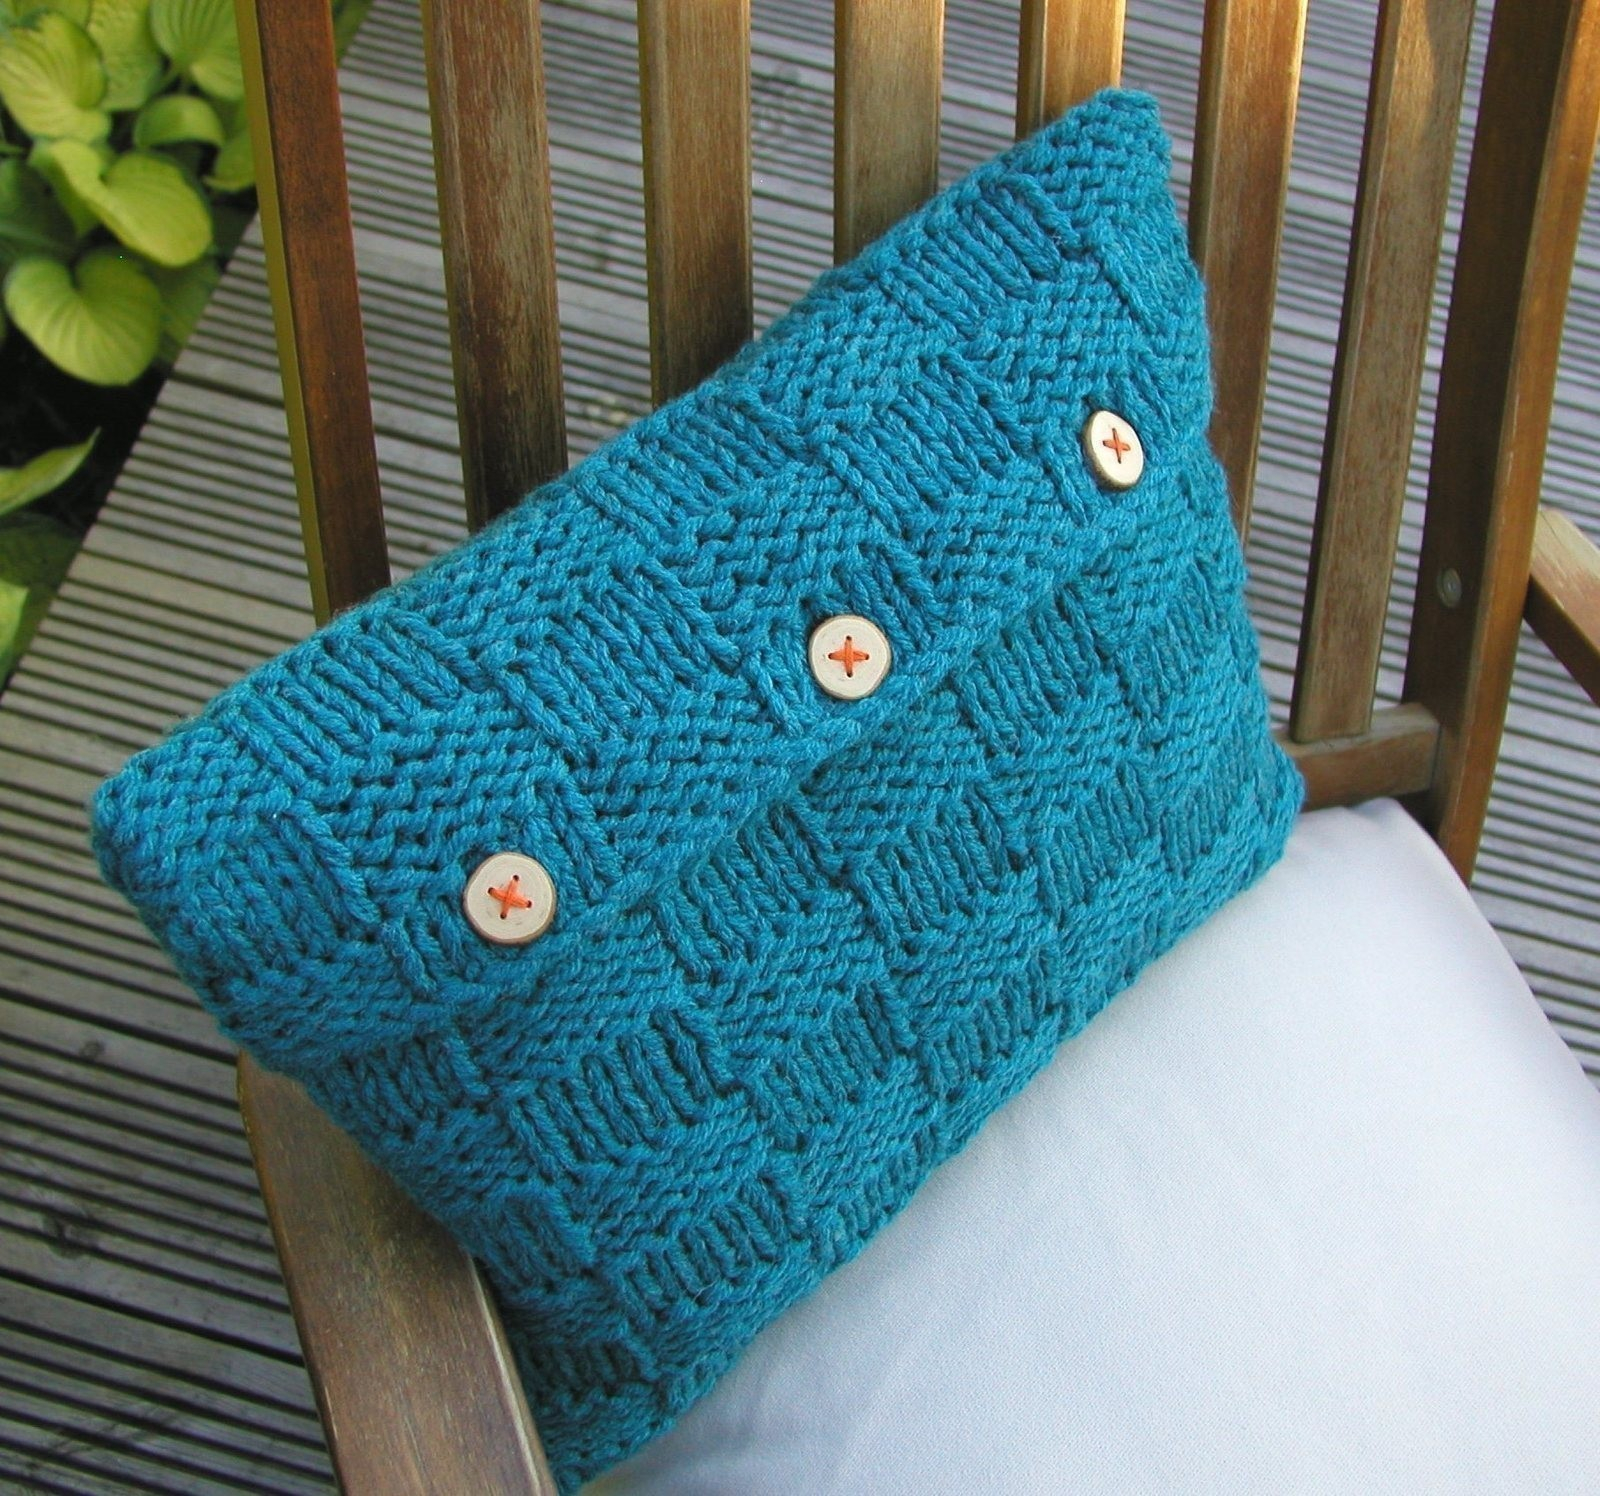 Free Cushion Knitting Patterns Checkerboard Cushion Cover How To Stitch A Knit Or Crochet Cushion